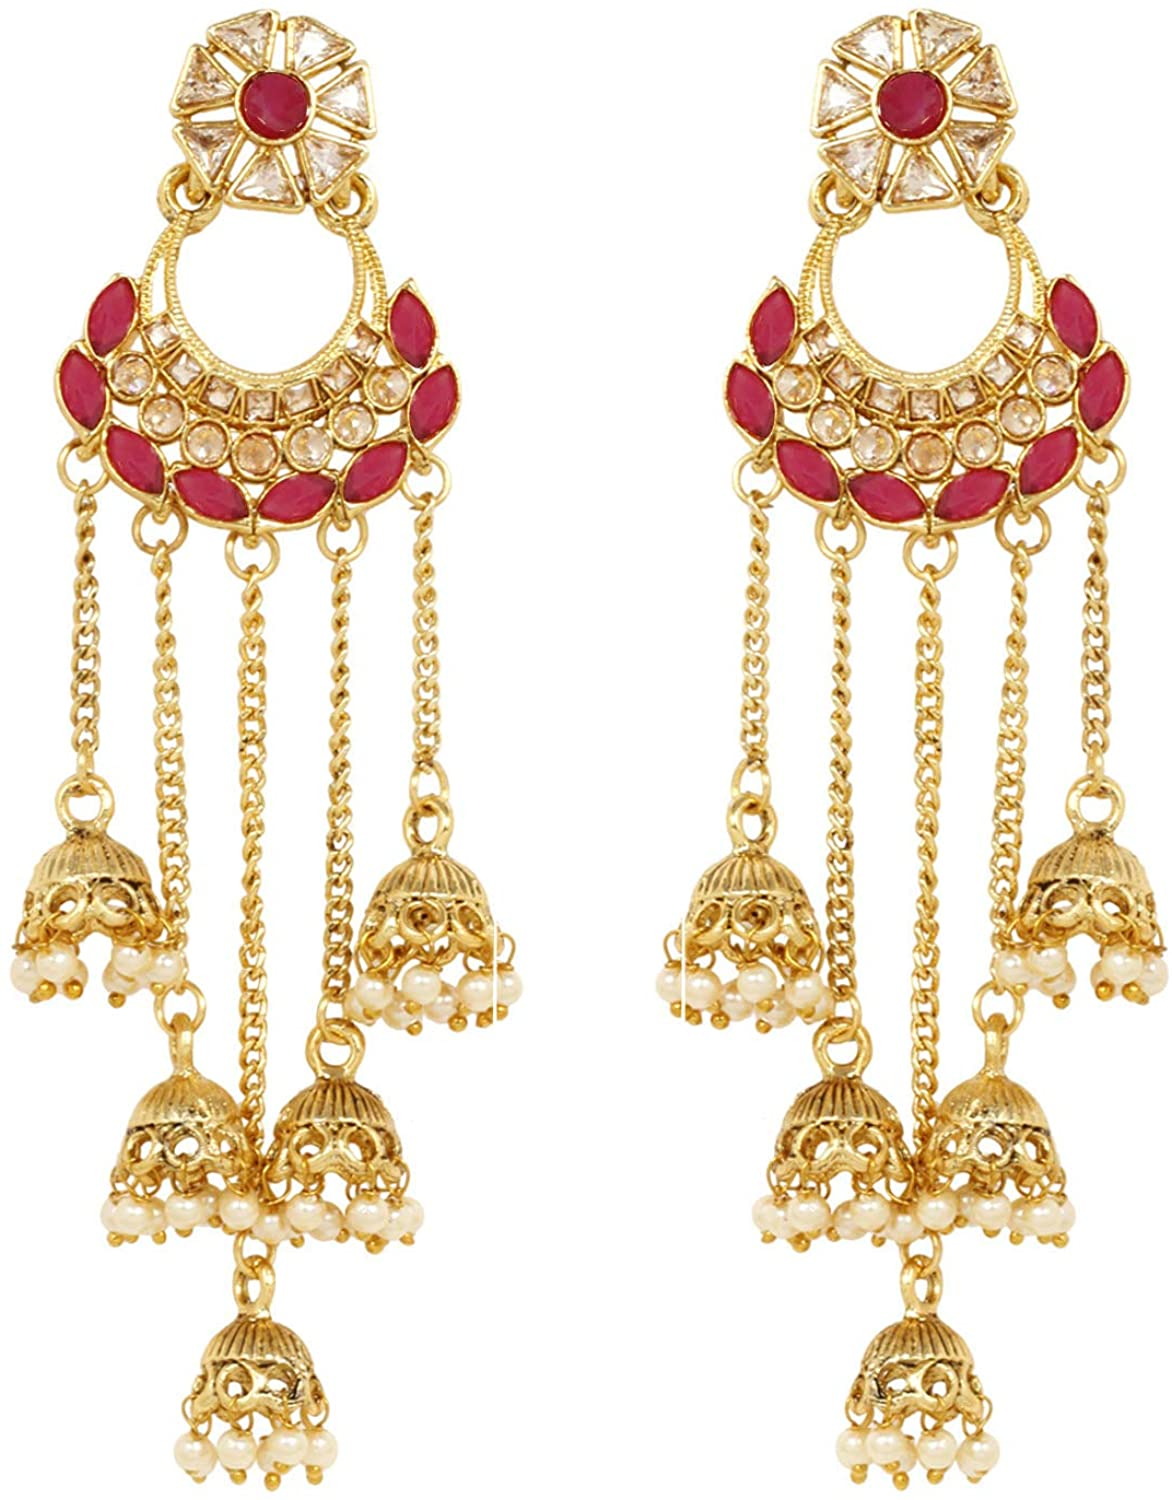 SANARA Exclusive Gold Plated Dangle Drop Jhumki Earrings Traditional Fashionable jewelry